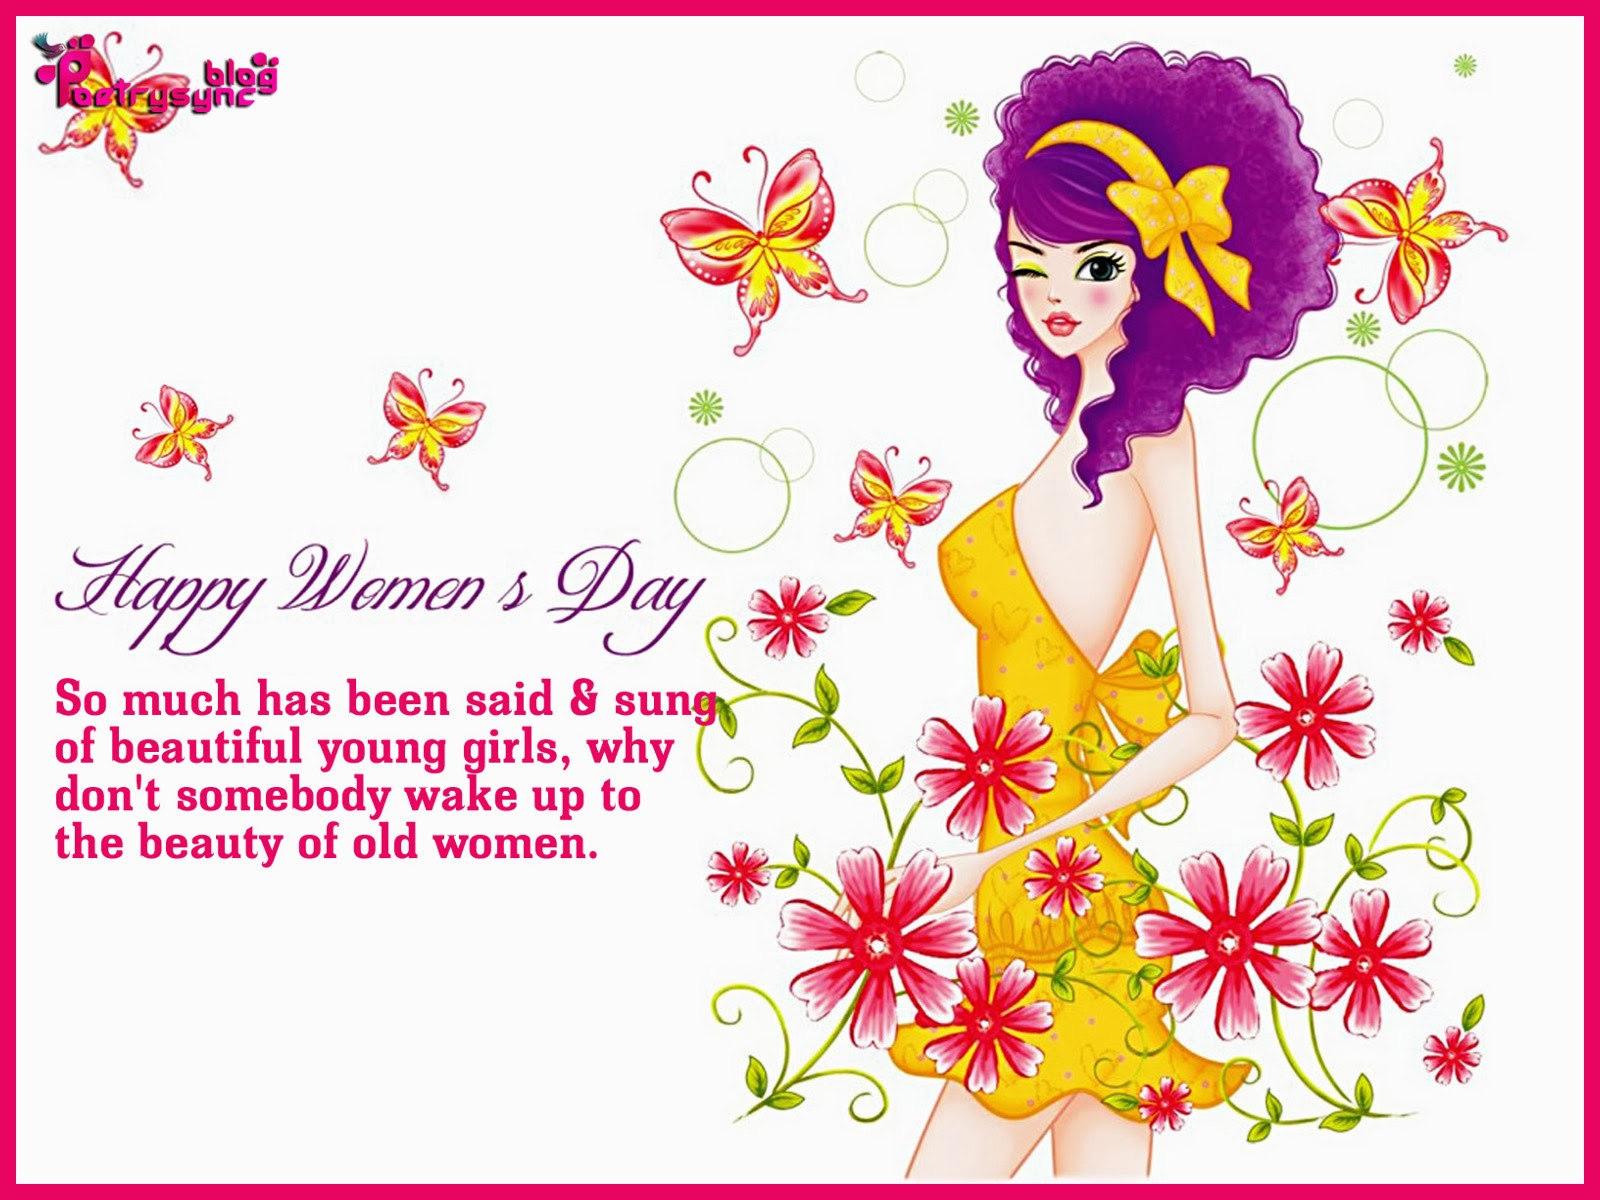 Women's Day Whatsapp Status & Messages for Facebook